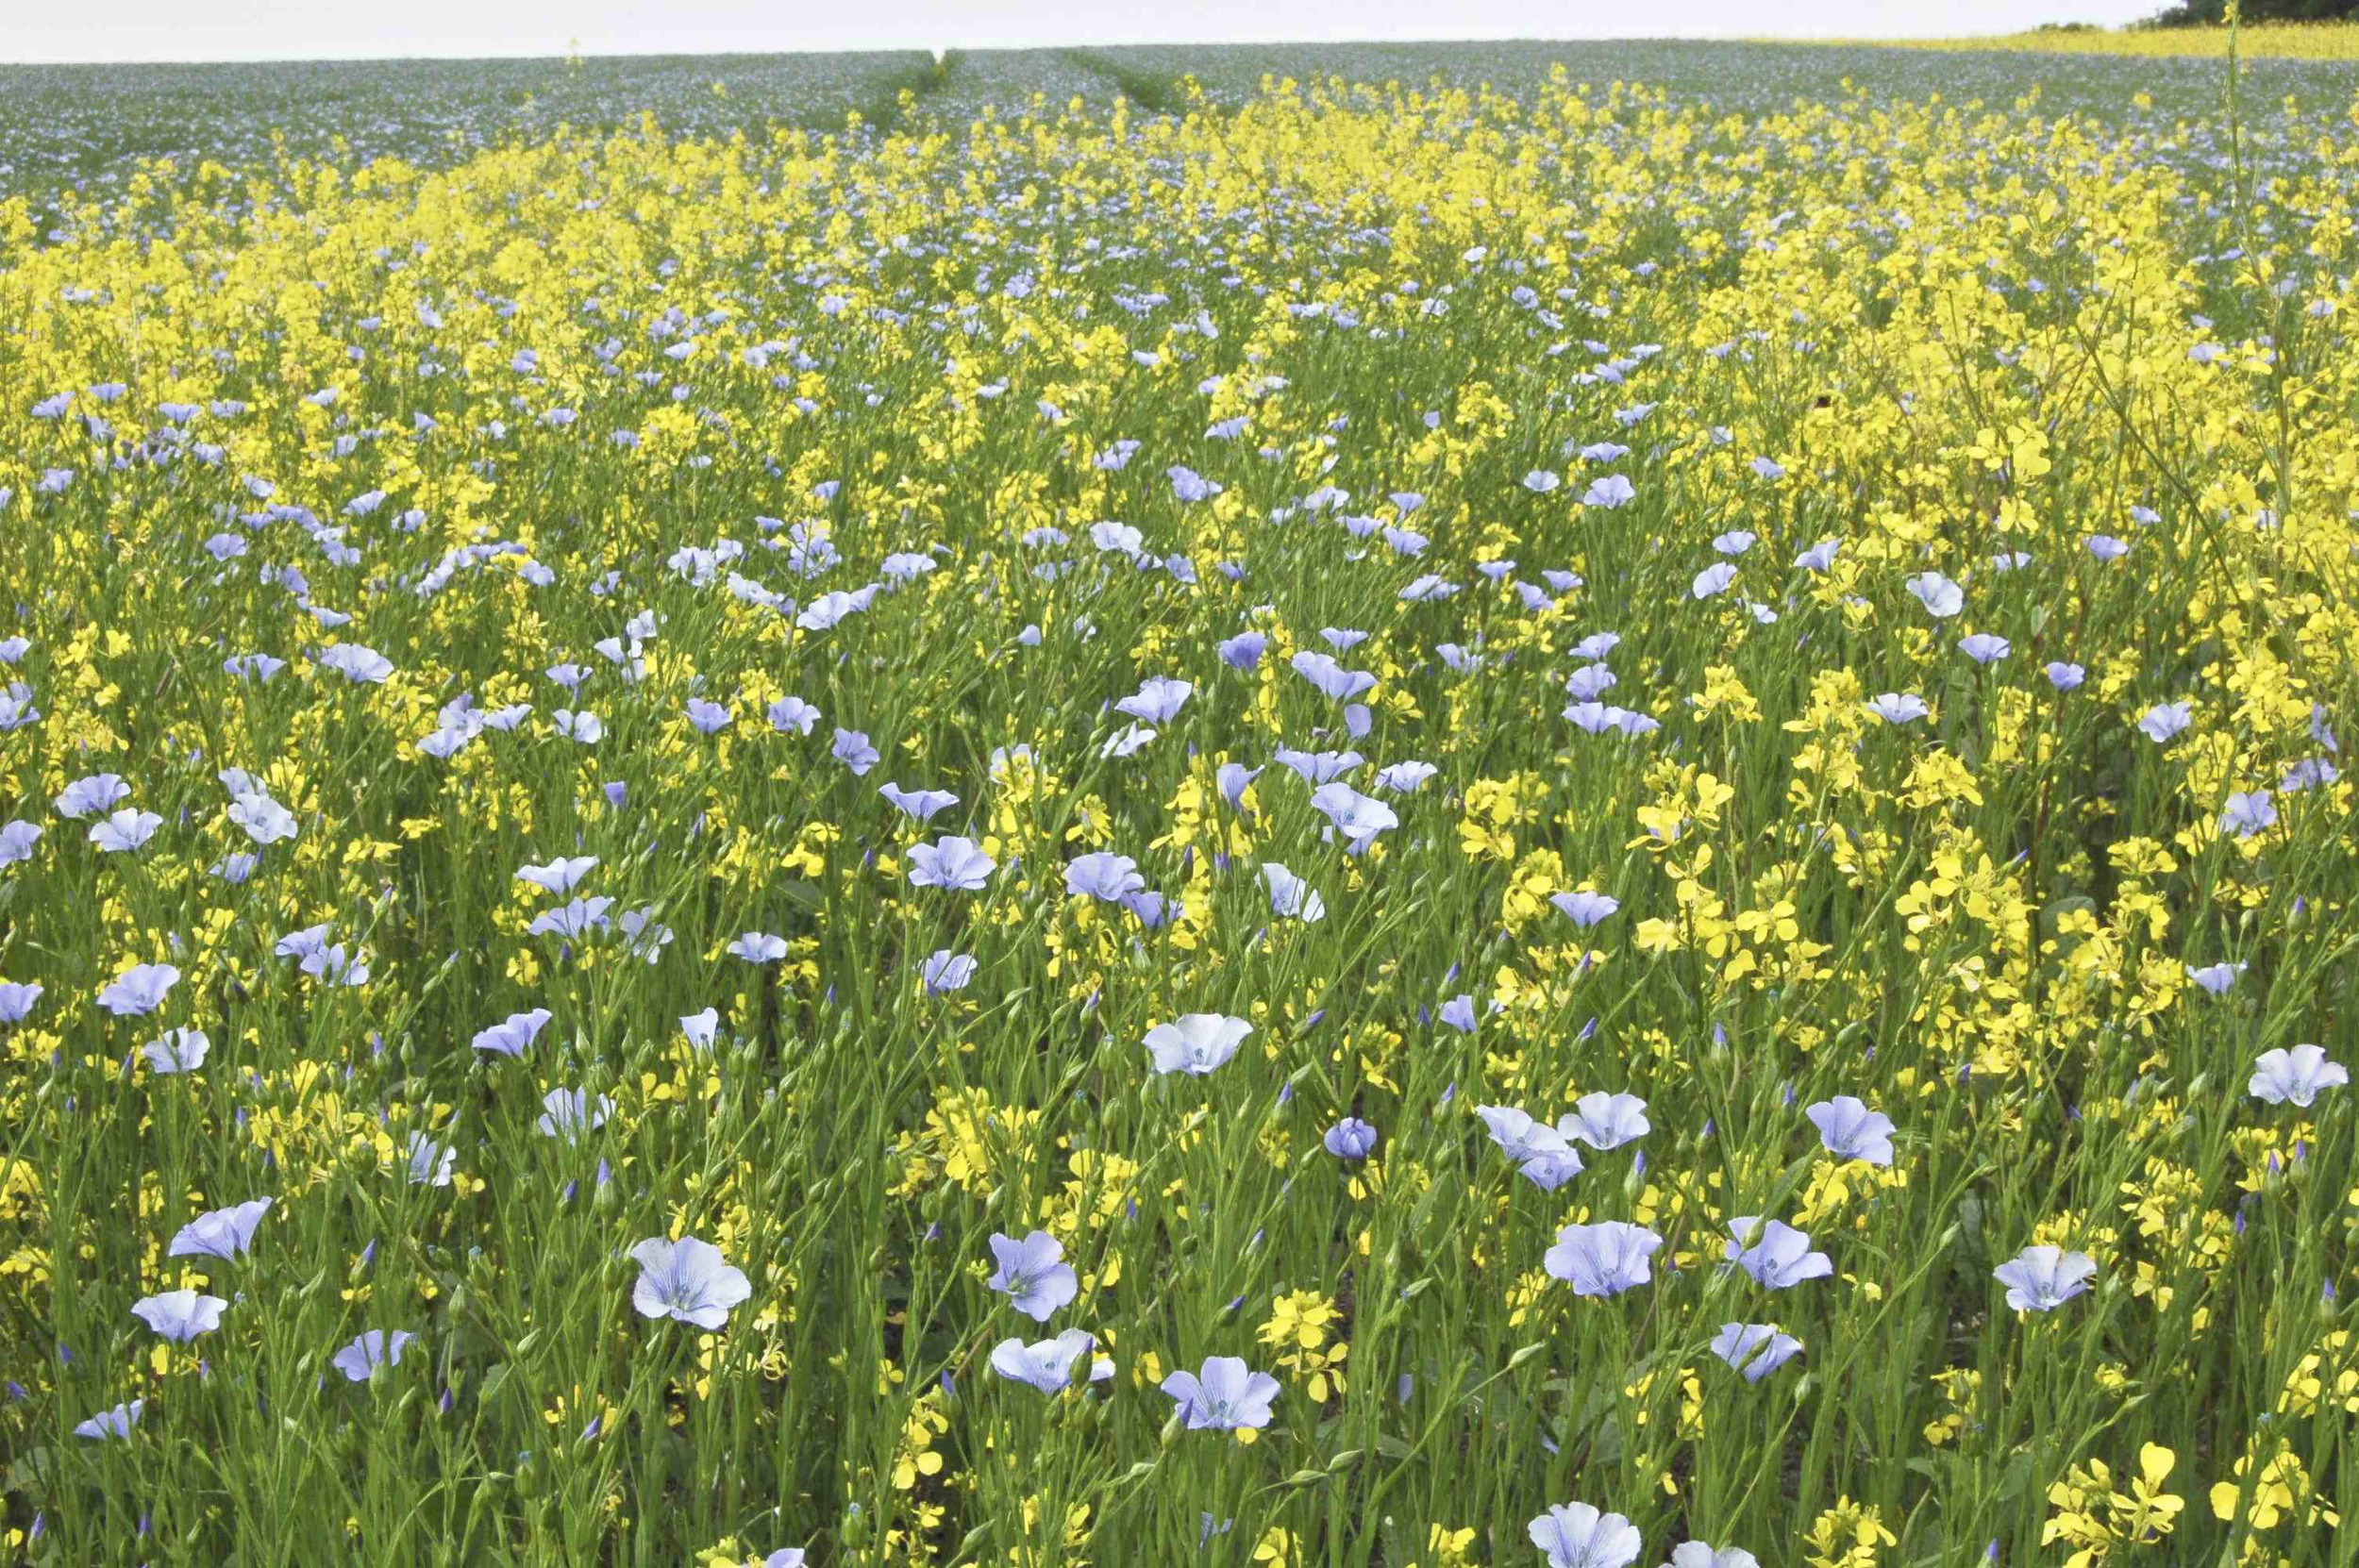 Linseed Field with rogue rape